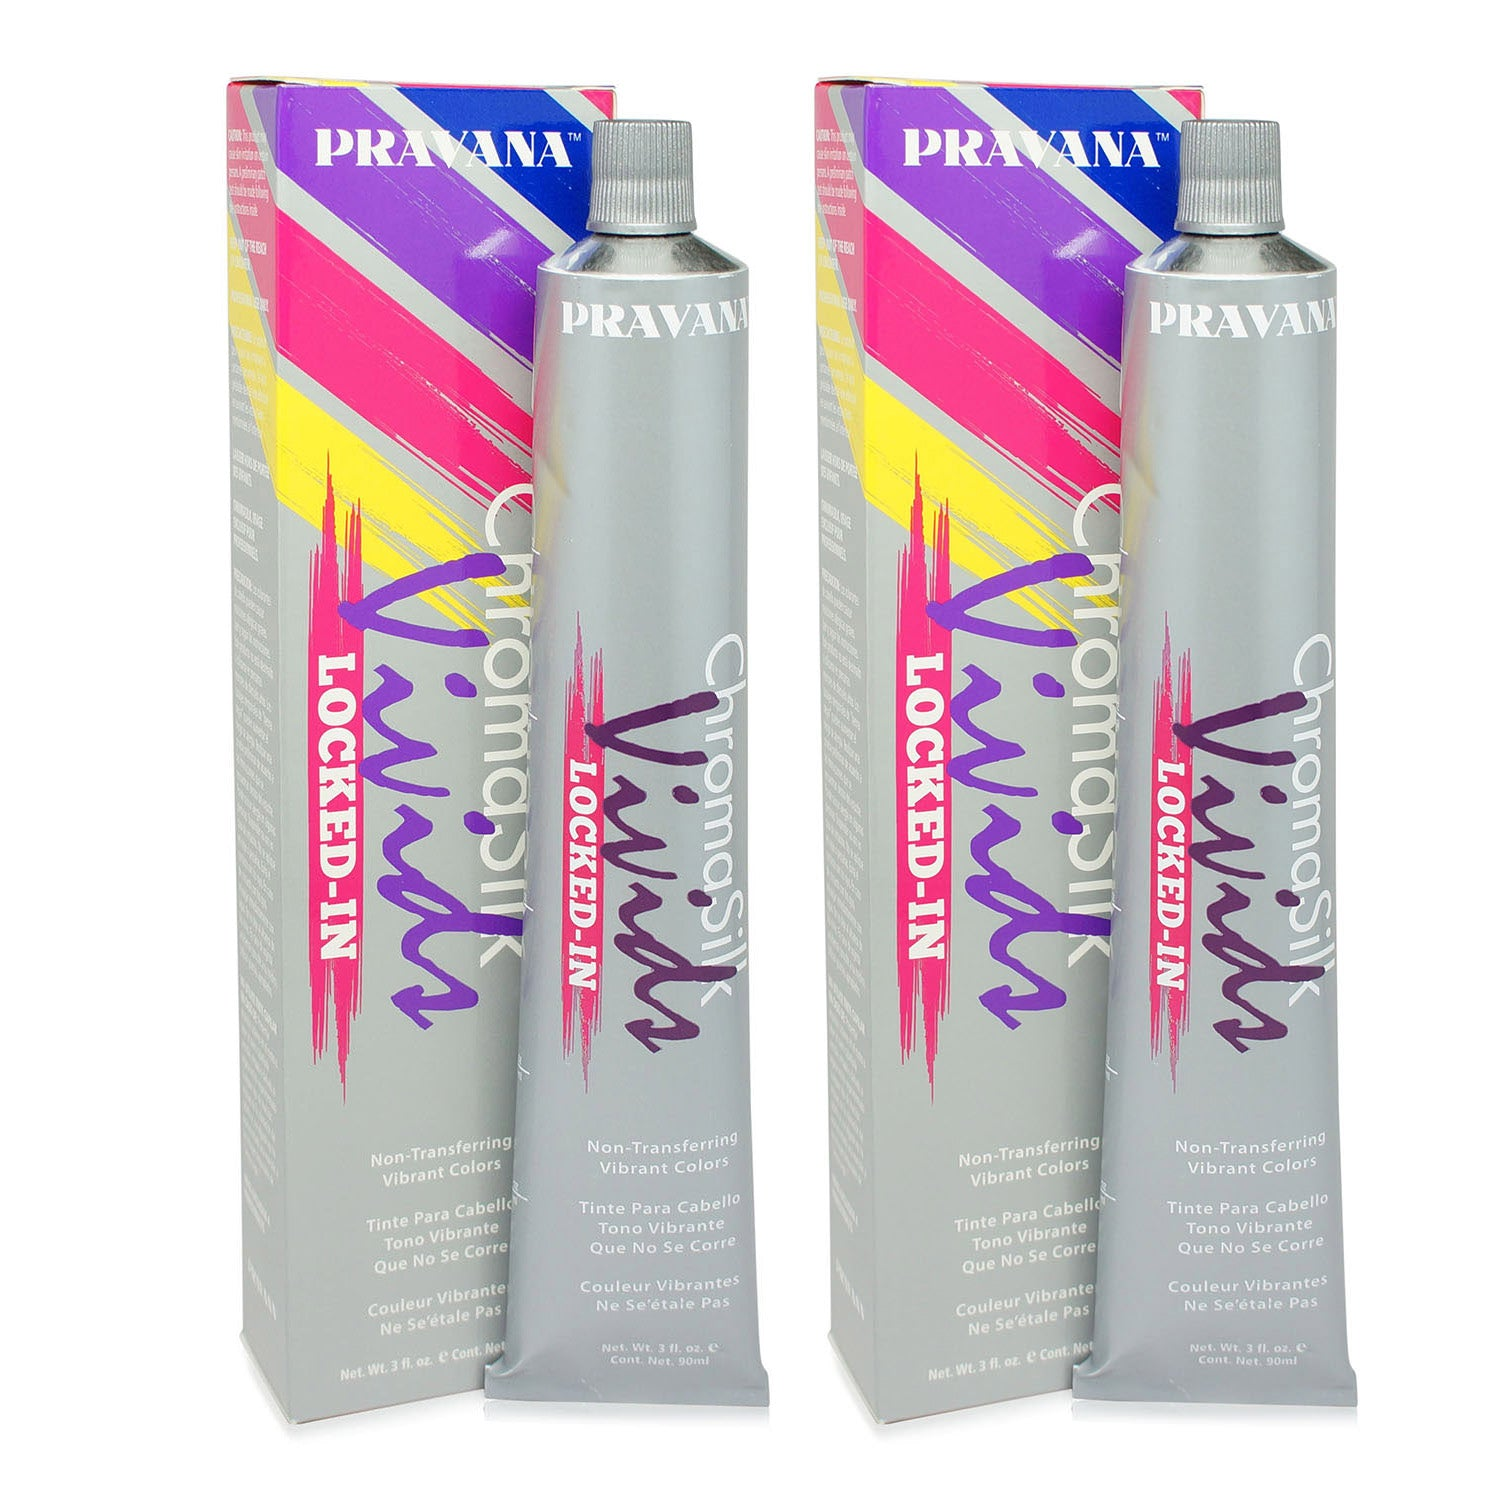 PRAVANA ~ CHROMA SILK VIVIDS HAIR COLOR LOCKED IN PURPLE 3 OZ ~ 2 PACK